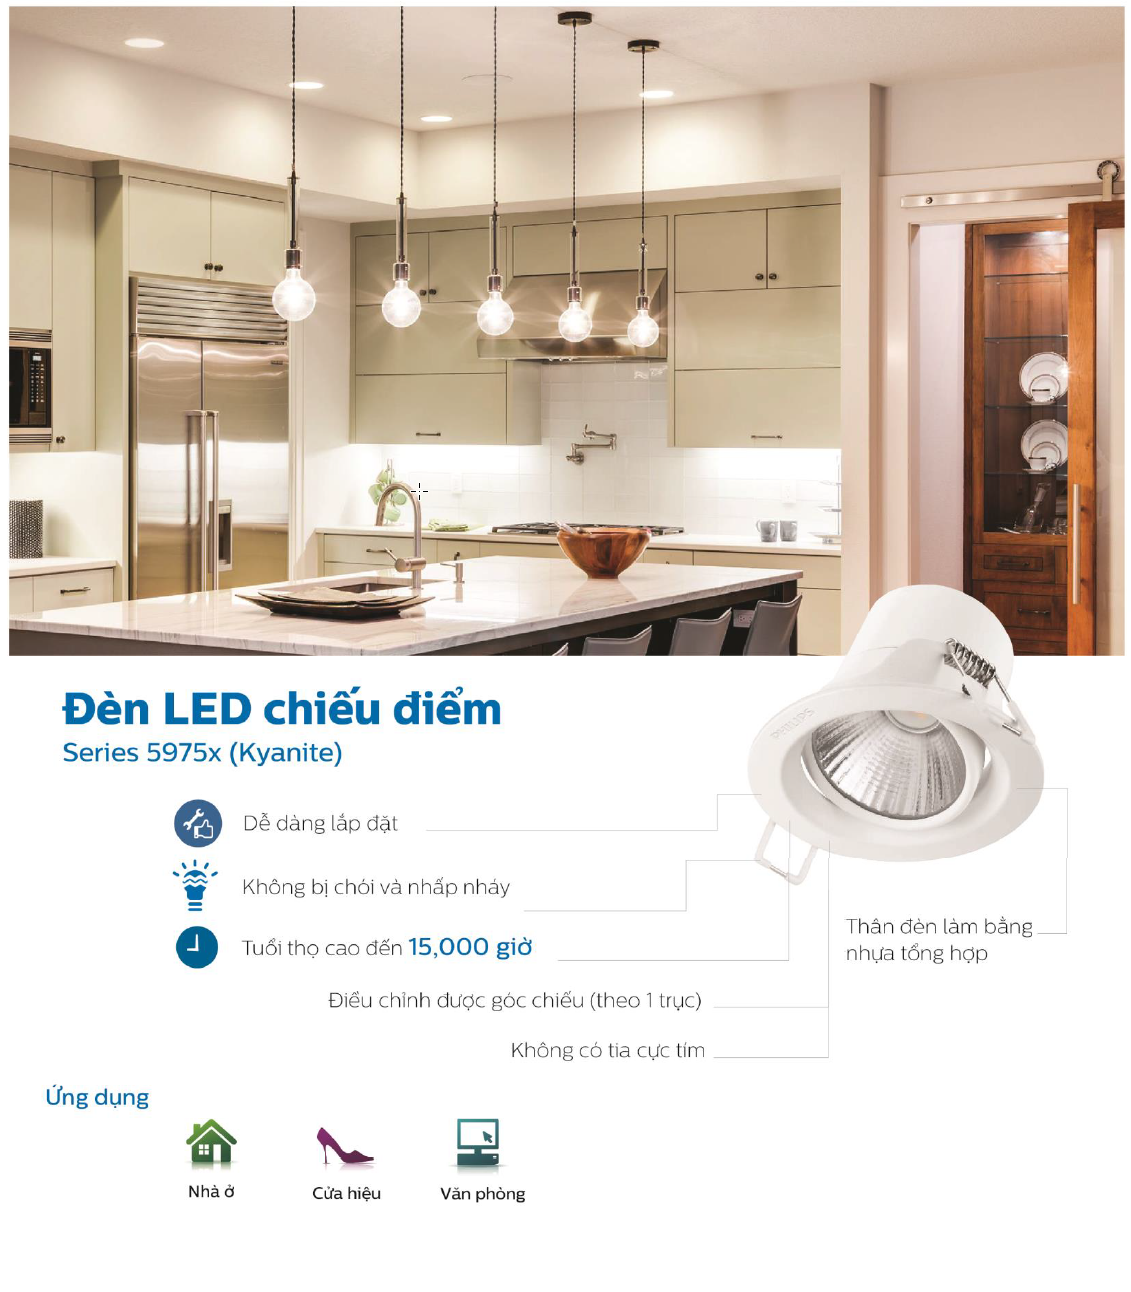 Đèn Downlight Led chiếu điểm Spotlight Philips 59752 Kyanite 5W 2700K